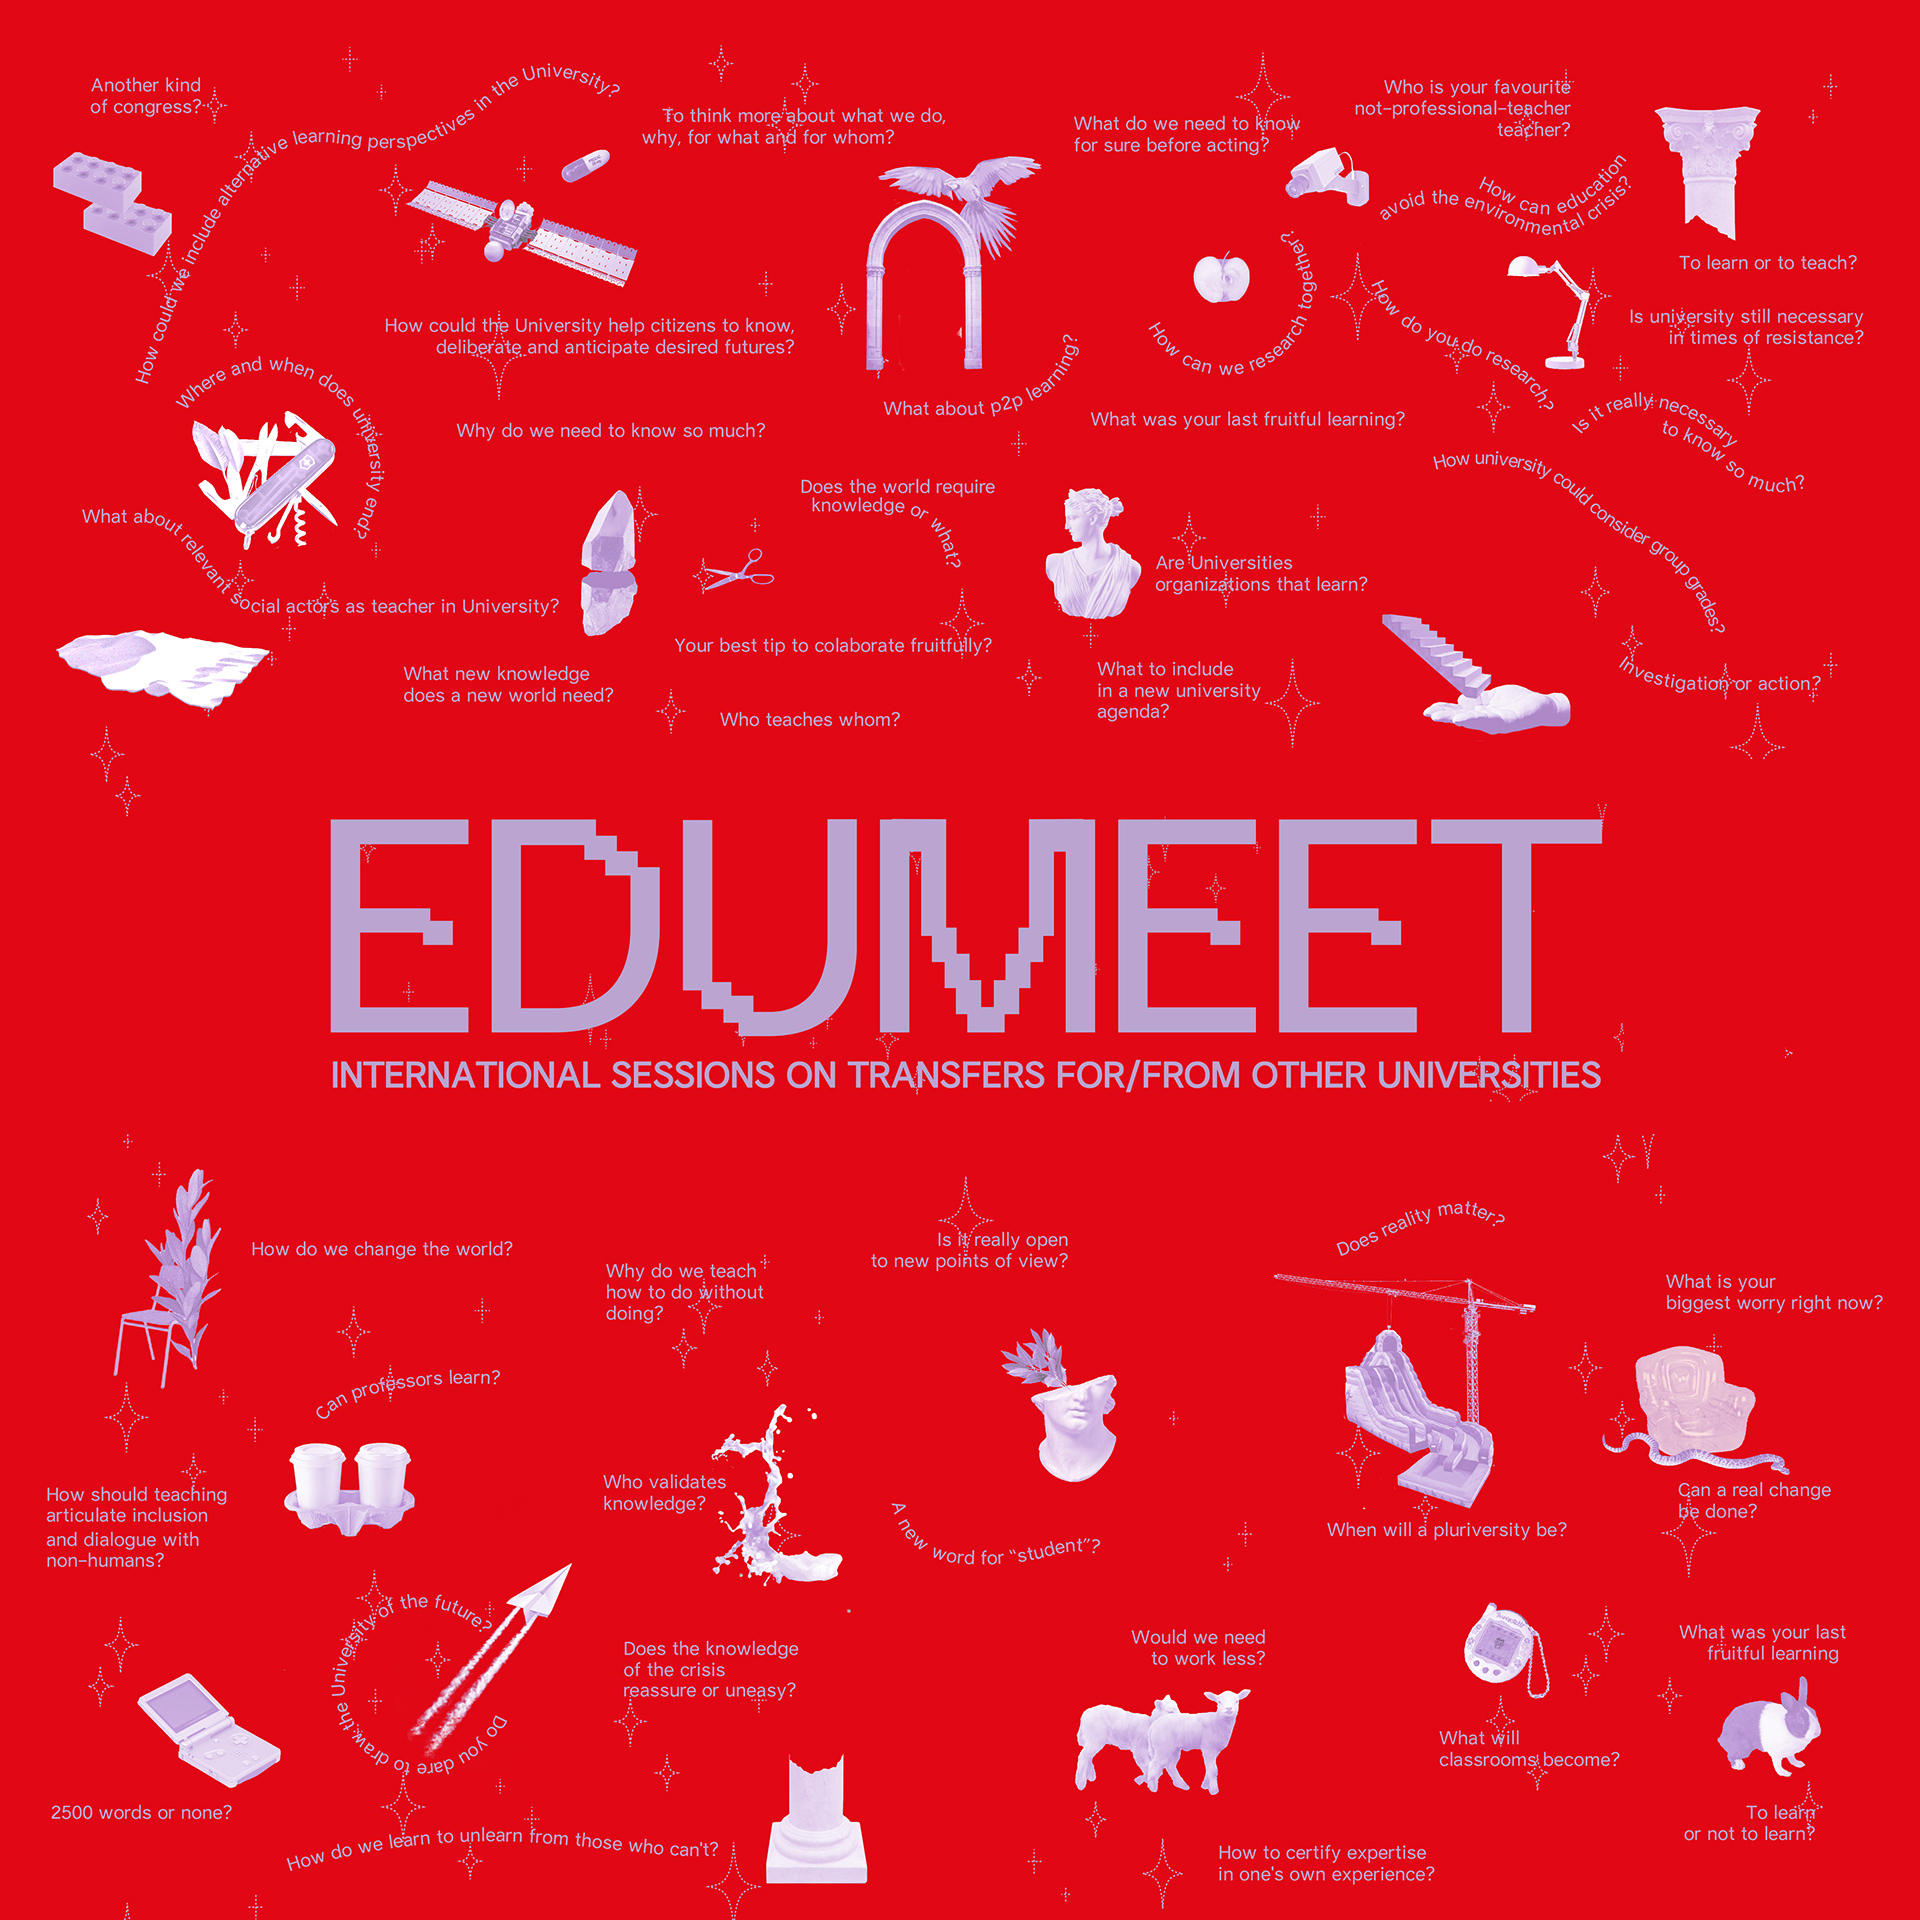 EDUMEET 2021 SESSIONS